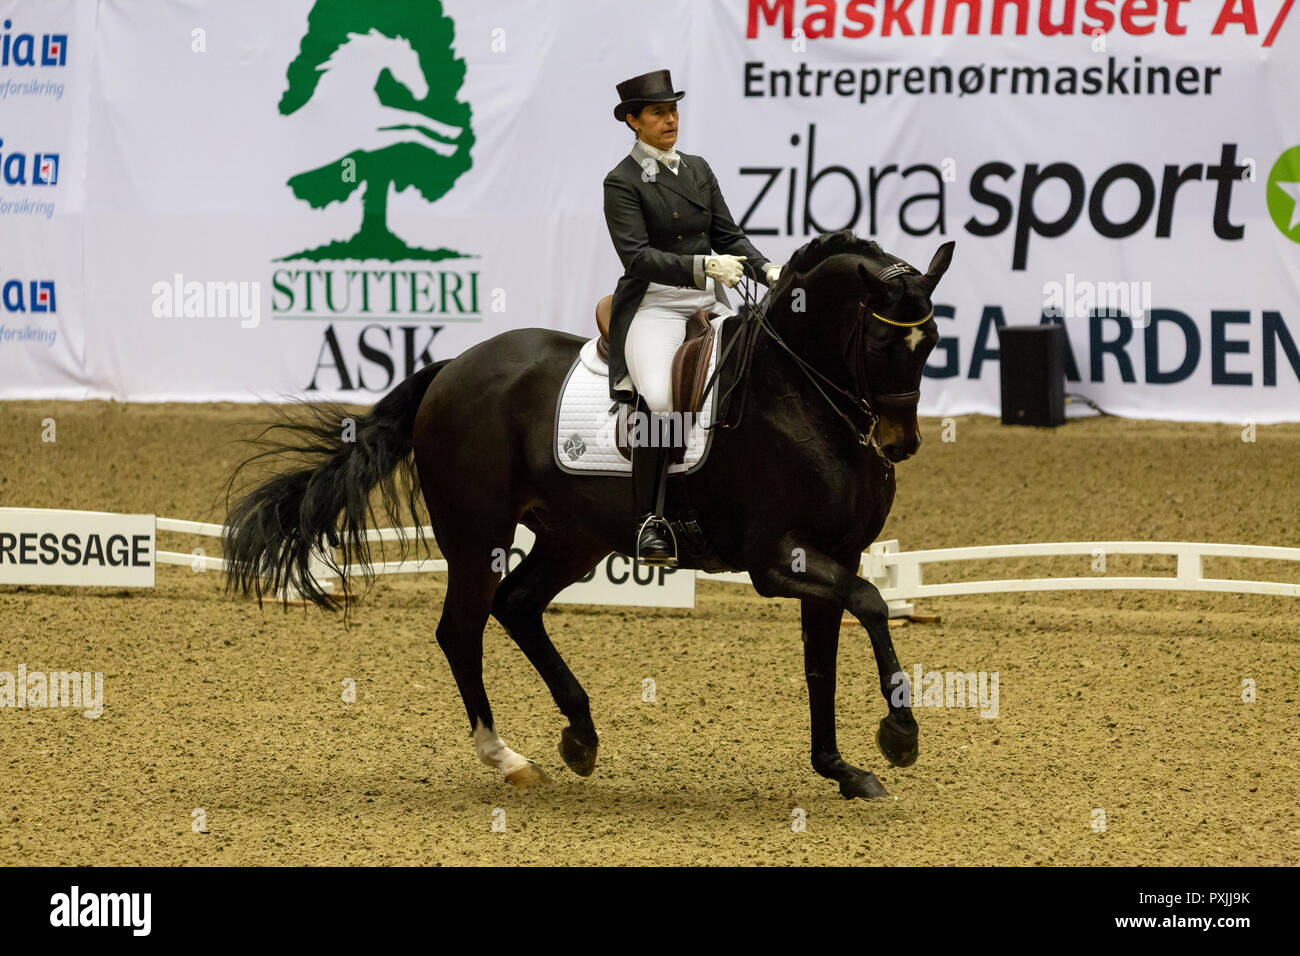 Herning, Denmark. 21st October, 2018. Tinna Vilhrlmson of Sweden riding Don Aiurella  during the FEI World Cup 2018 in freestyle dressage in Denmark. Credit: OJPHOTOS/Alamy Live News Stock Photo